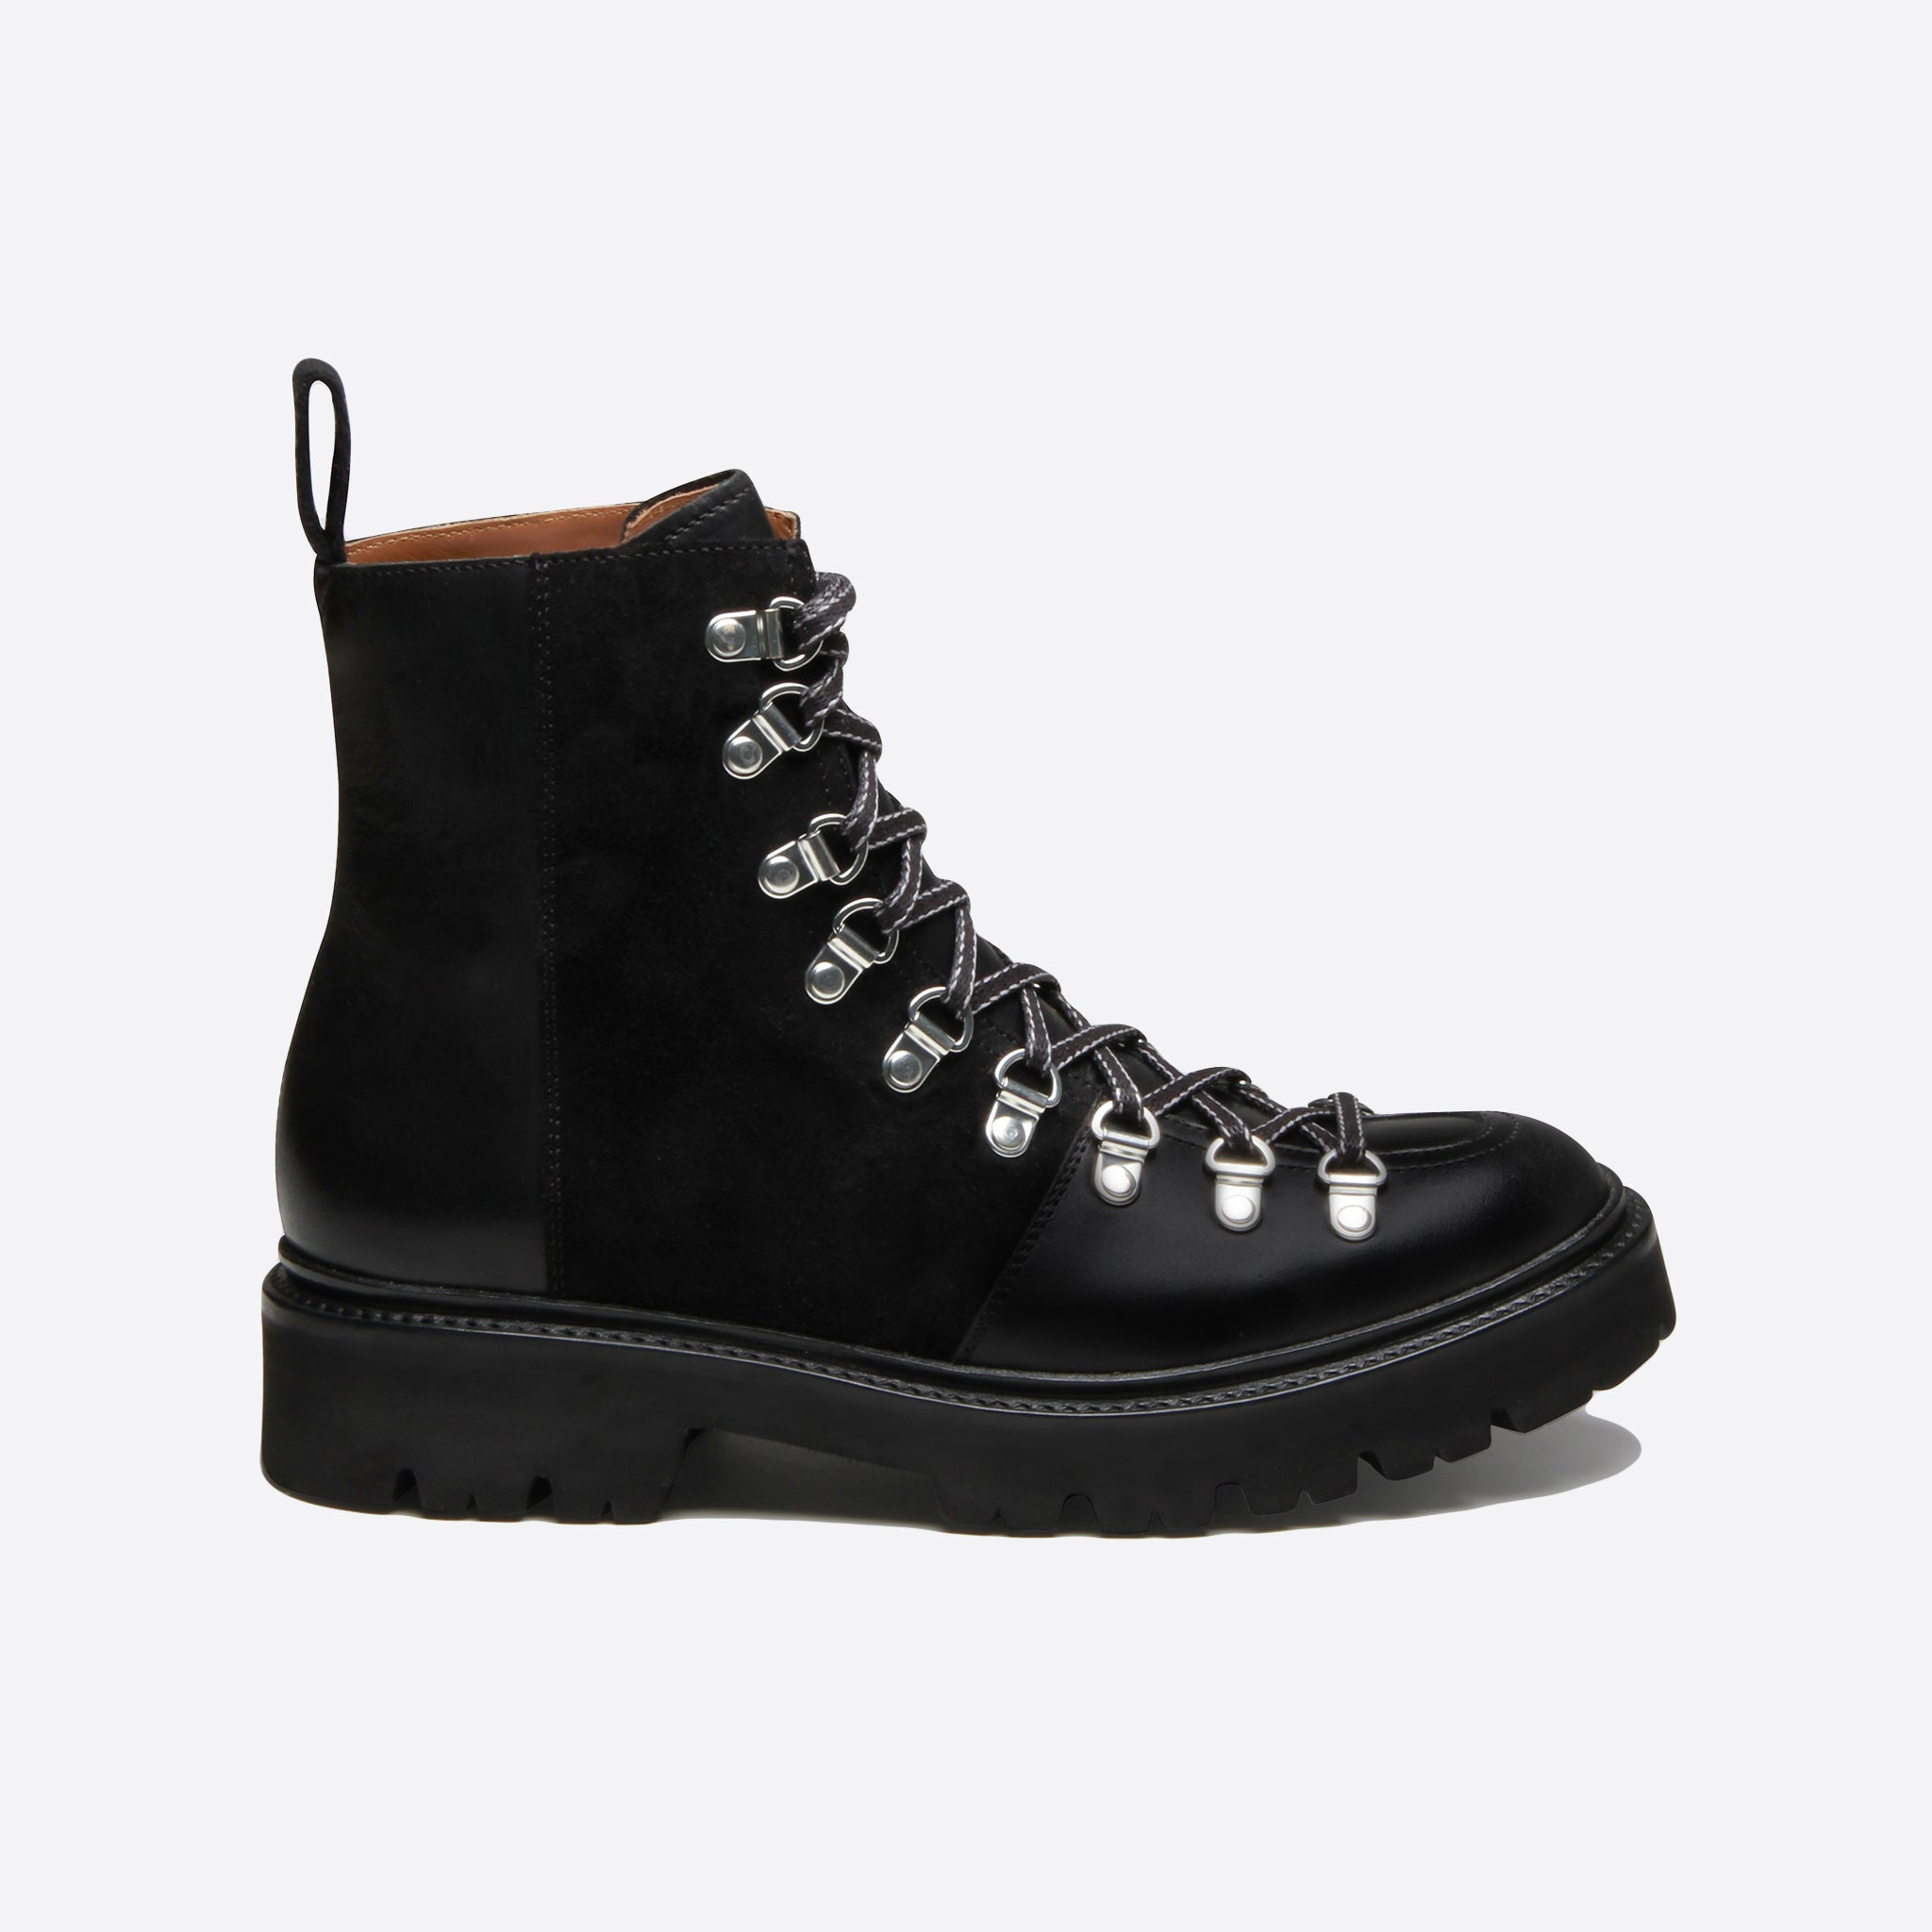 Grenson Nanette Boots in Black Colorado Leather